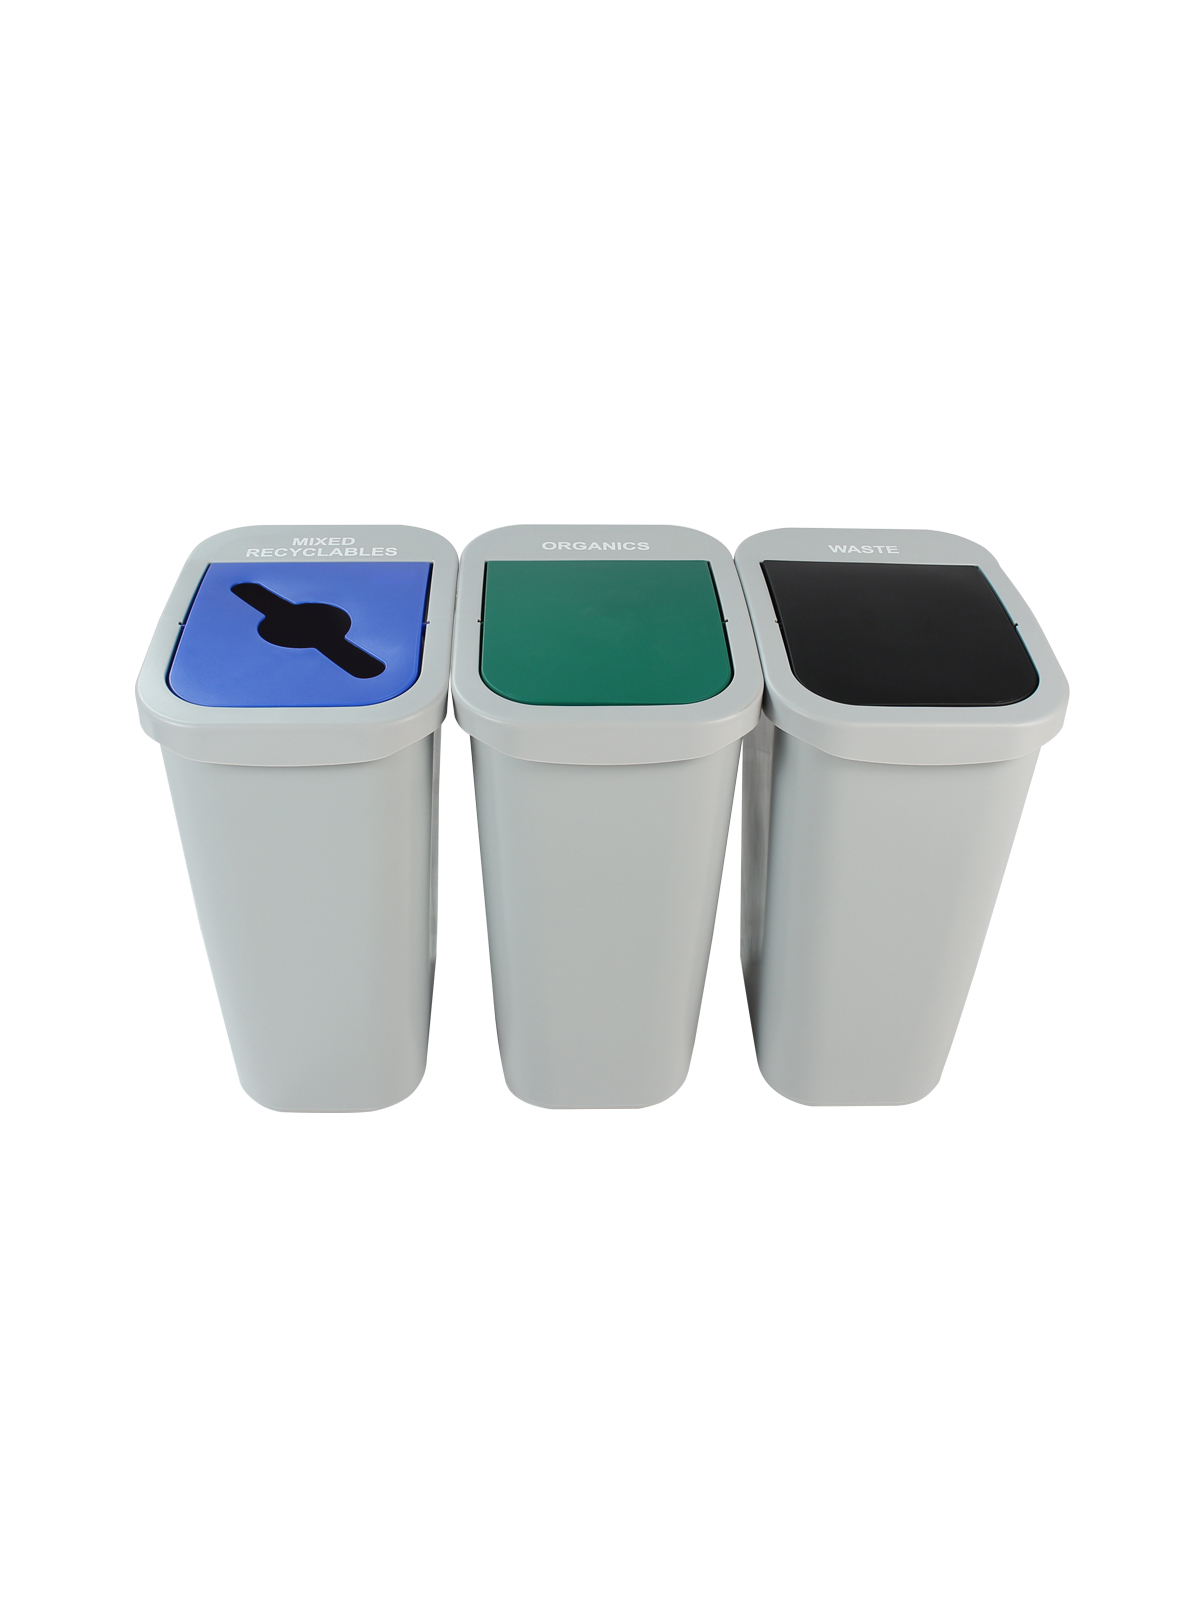 BILLI BOX - Triple - 10 G - Mixed Recyclables-Organics-Waste - Mixed-Swing-Swing - Grey-Blue-Green-Black